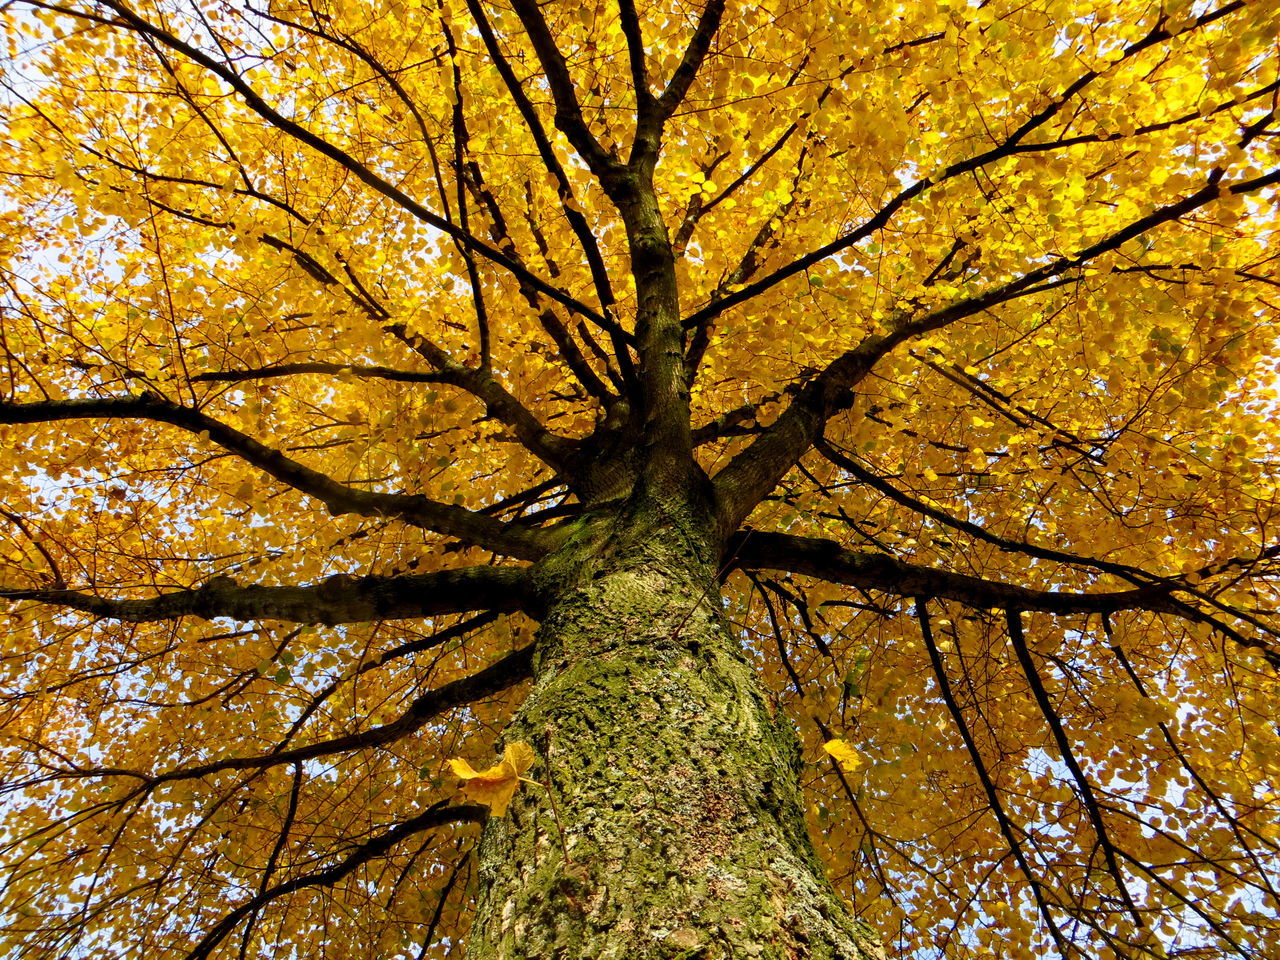 Yellow Linden Tree: watching the leaves fall Autumn Autumn Collection Autumn Colors Autumn Leaves Autumn🍁🍁🍁 Backgrounds Beauty In Nature Branch Close-up Day Fall Fall Beauty Fall Colors Fall Collection Growth Linden Linden Tree Low Angle View Nature Outdoors Sky Tree Tree Trunk